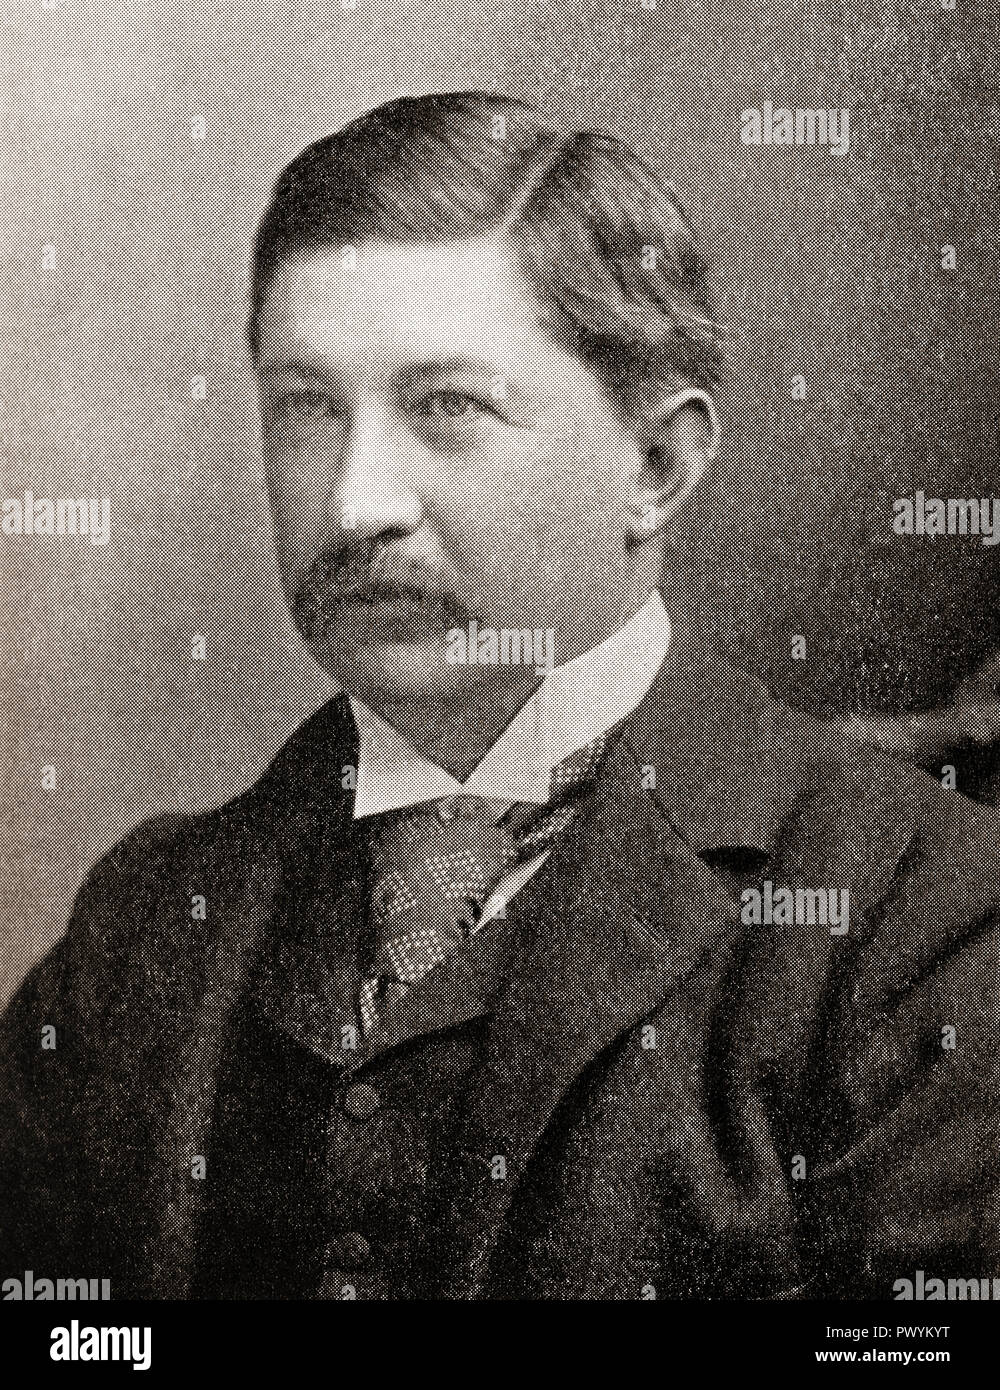 Sir William James Ingram, 1st Baronet,  1847 – 1924.   Managing Director of The Illustrated London News and a Liberal politician.  From The Business Encyclopedia and Legal Adviser, published 1920. - Stock Image